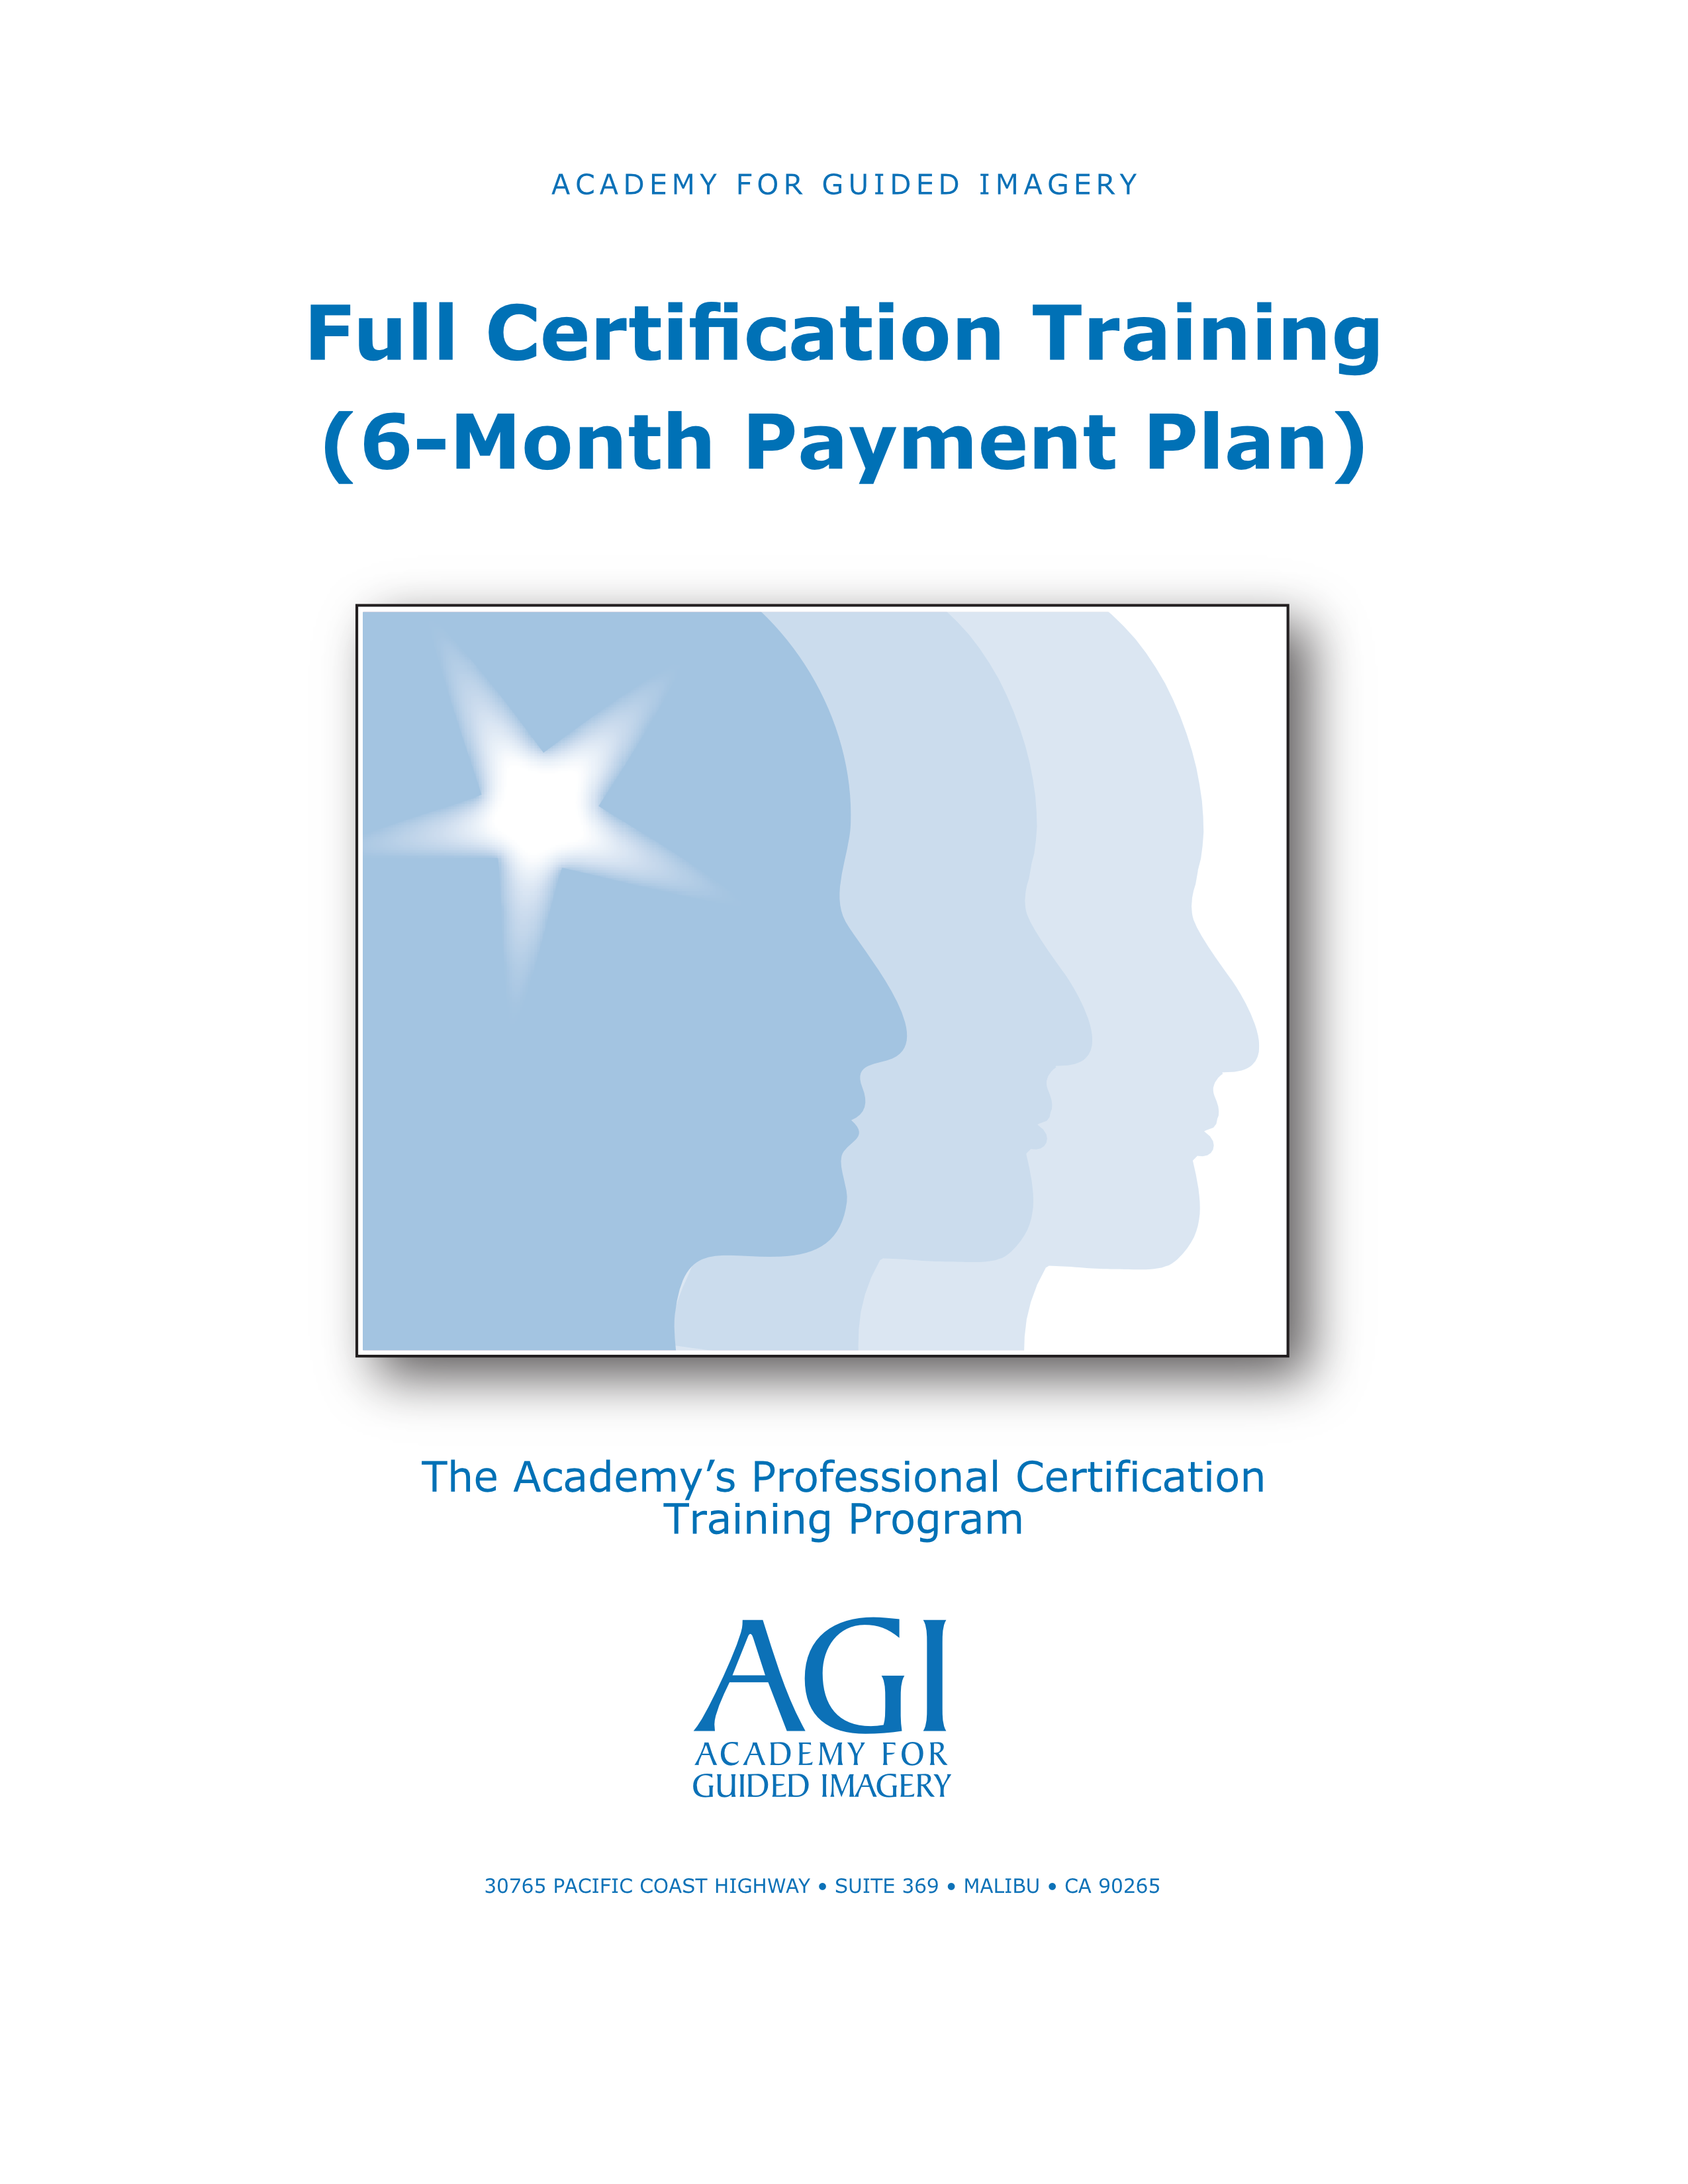 Full certification training 3 month payment plan full certification training 6 month payment plan xflitez Image collections